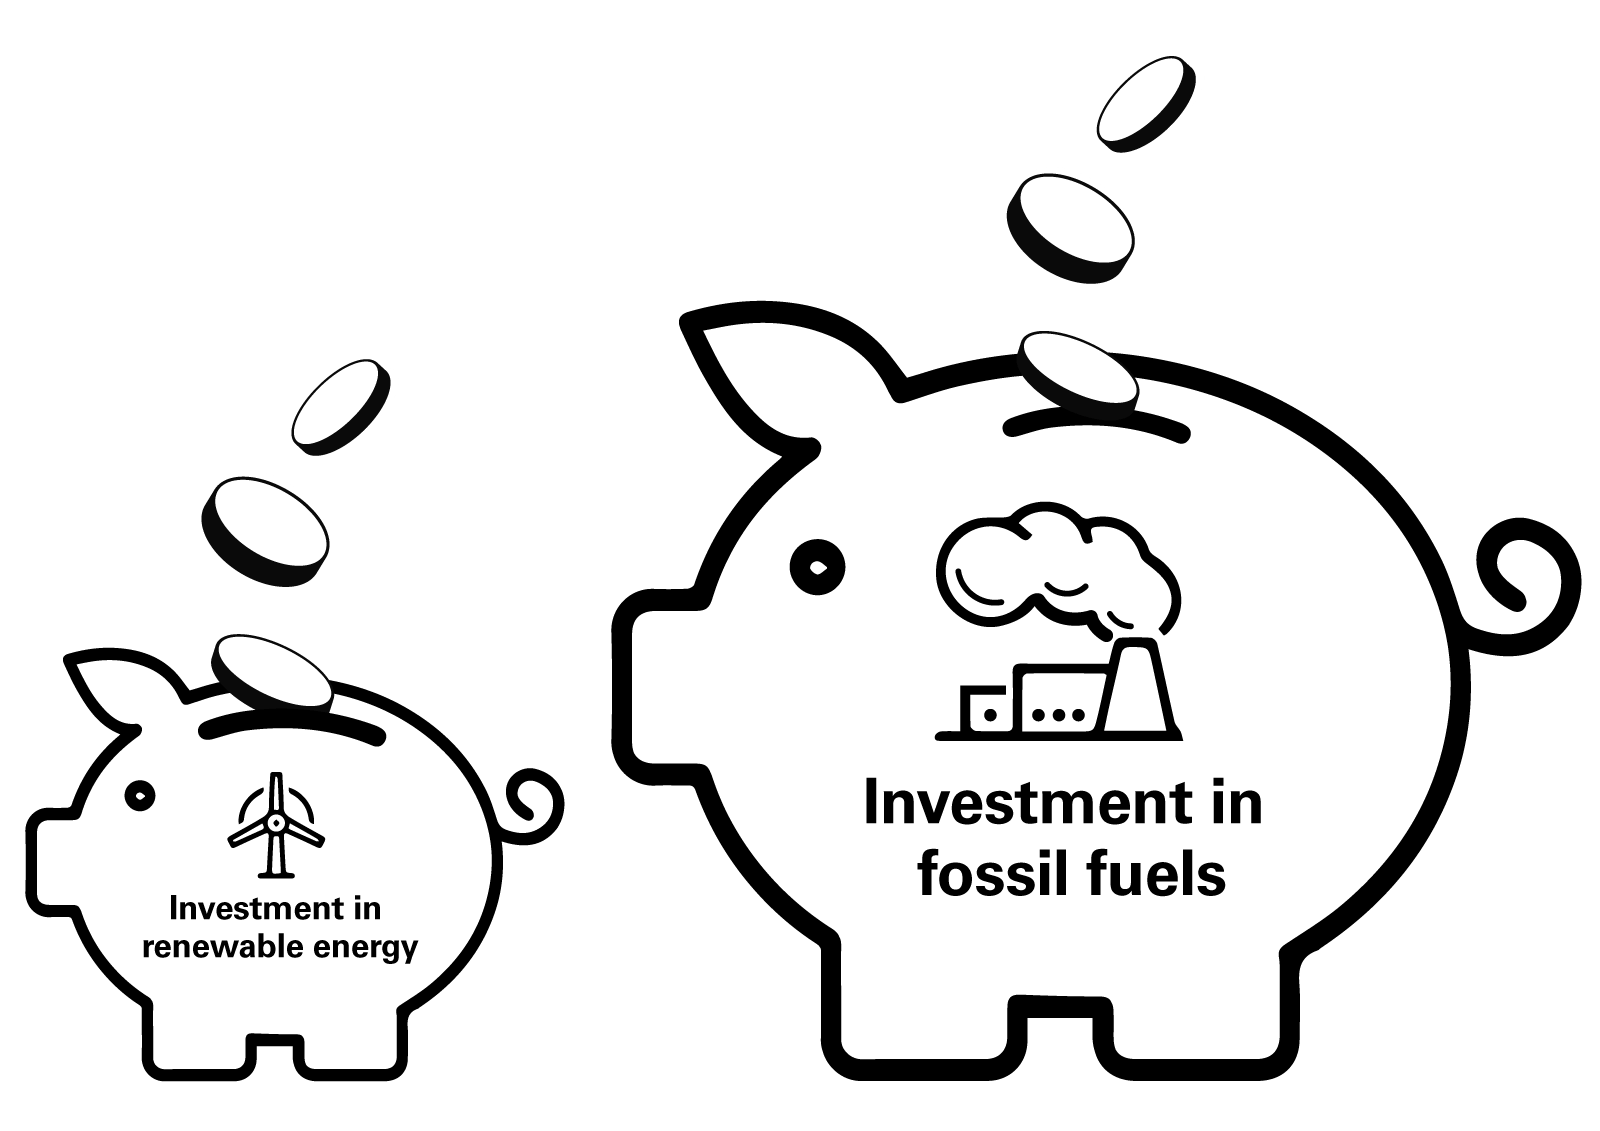 Graphic of a small piggy bank which says 'investment in renewable energy' next to a large piggy bank which says 'investment in fossil fuels'